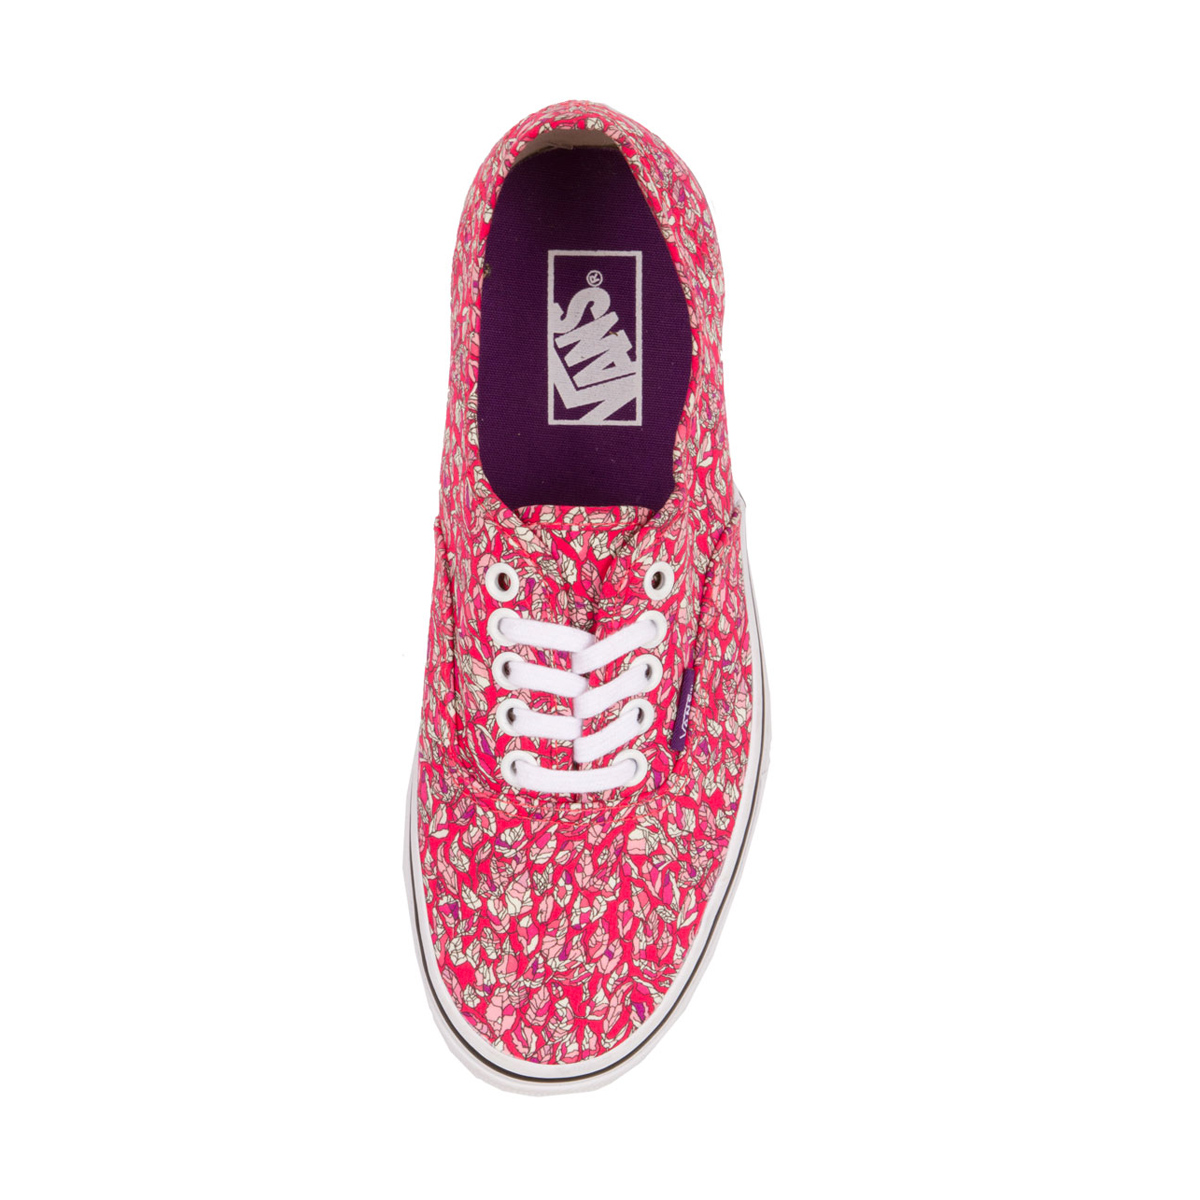 2cd5aaa0b0 The Liberty Art Fabrics x Vans Fall 2013 collection is available now at  Liberty of London